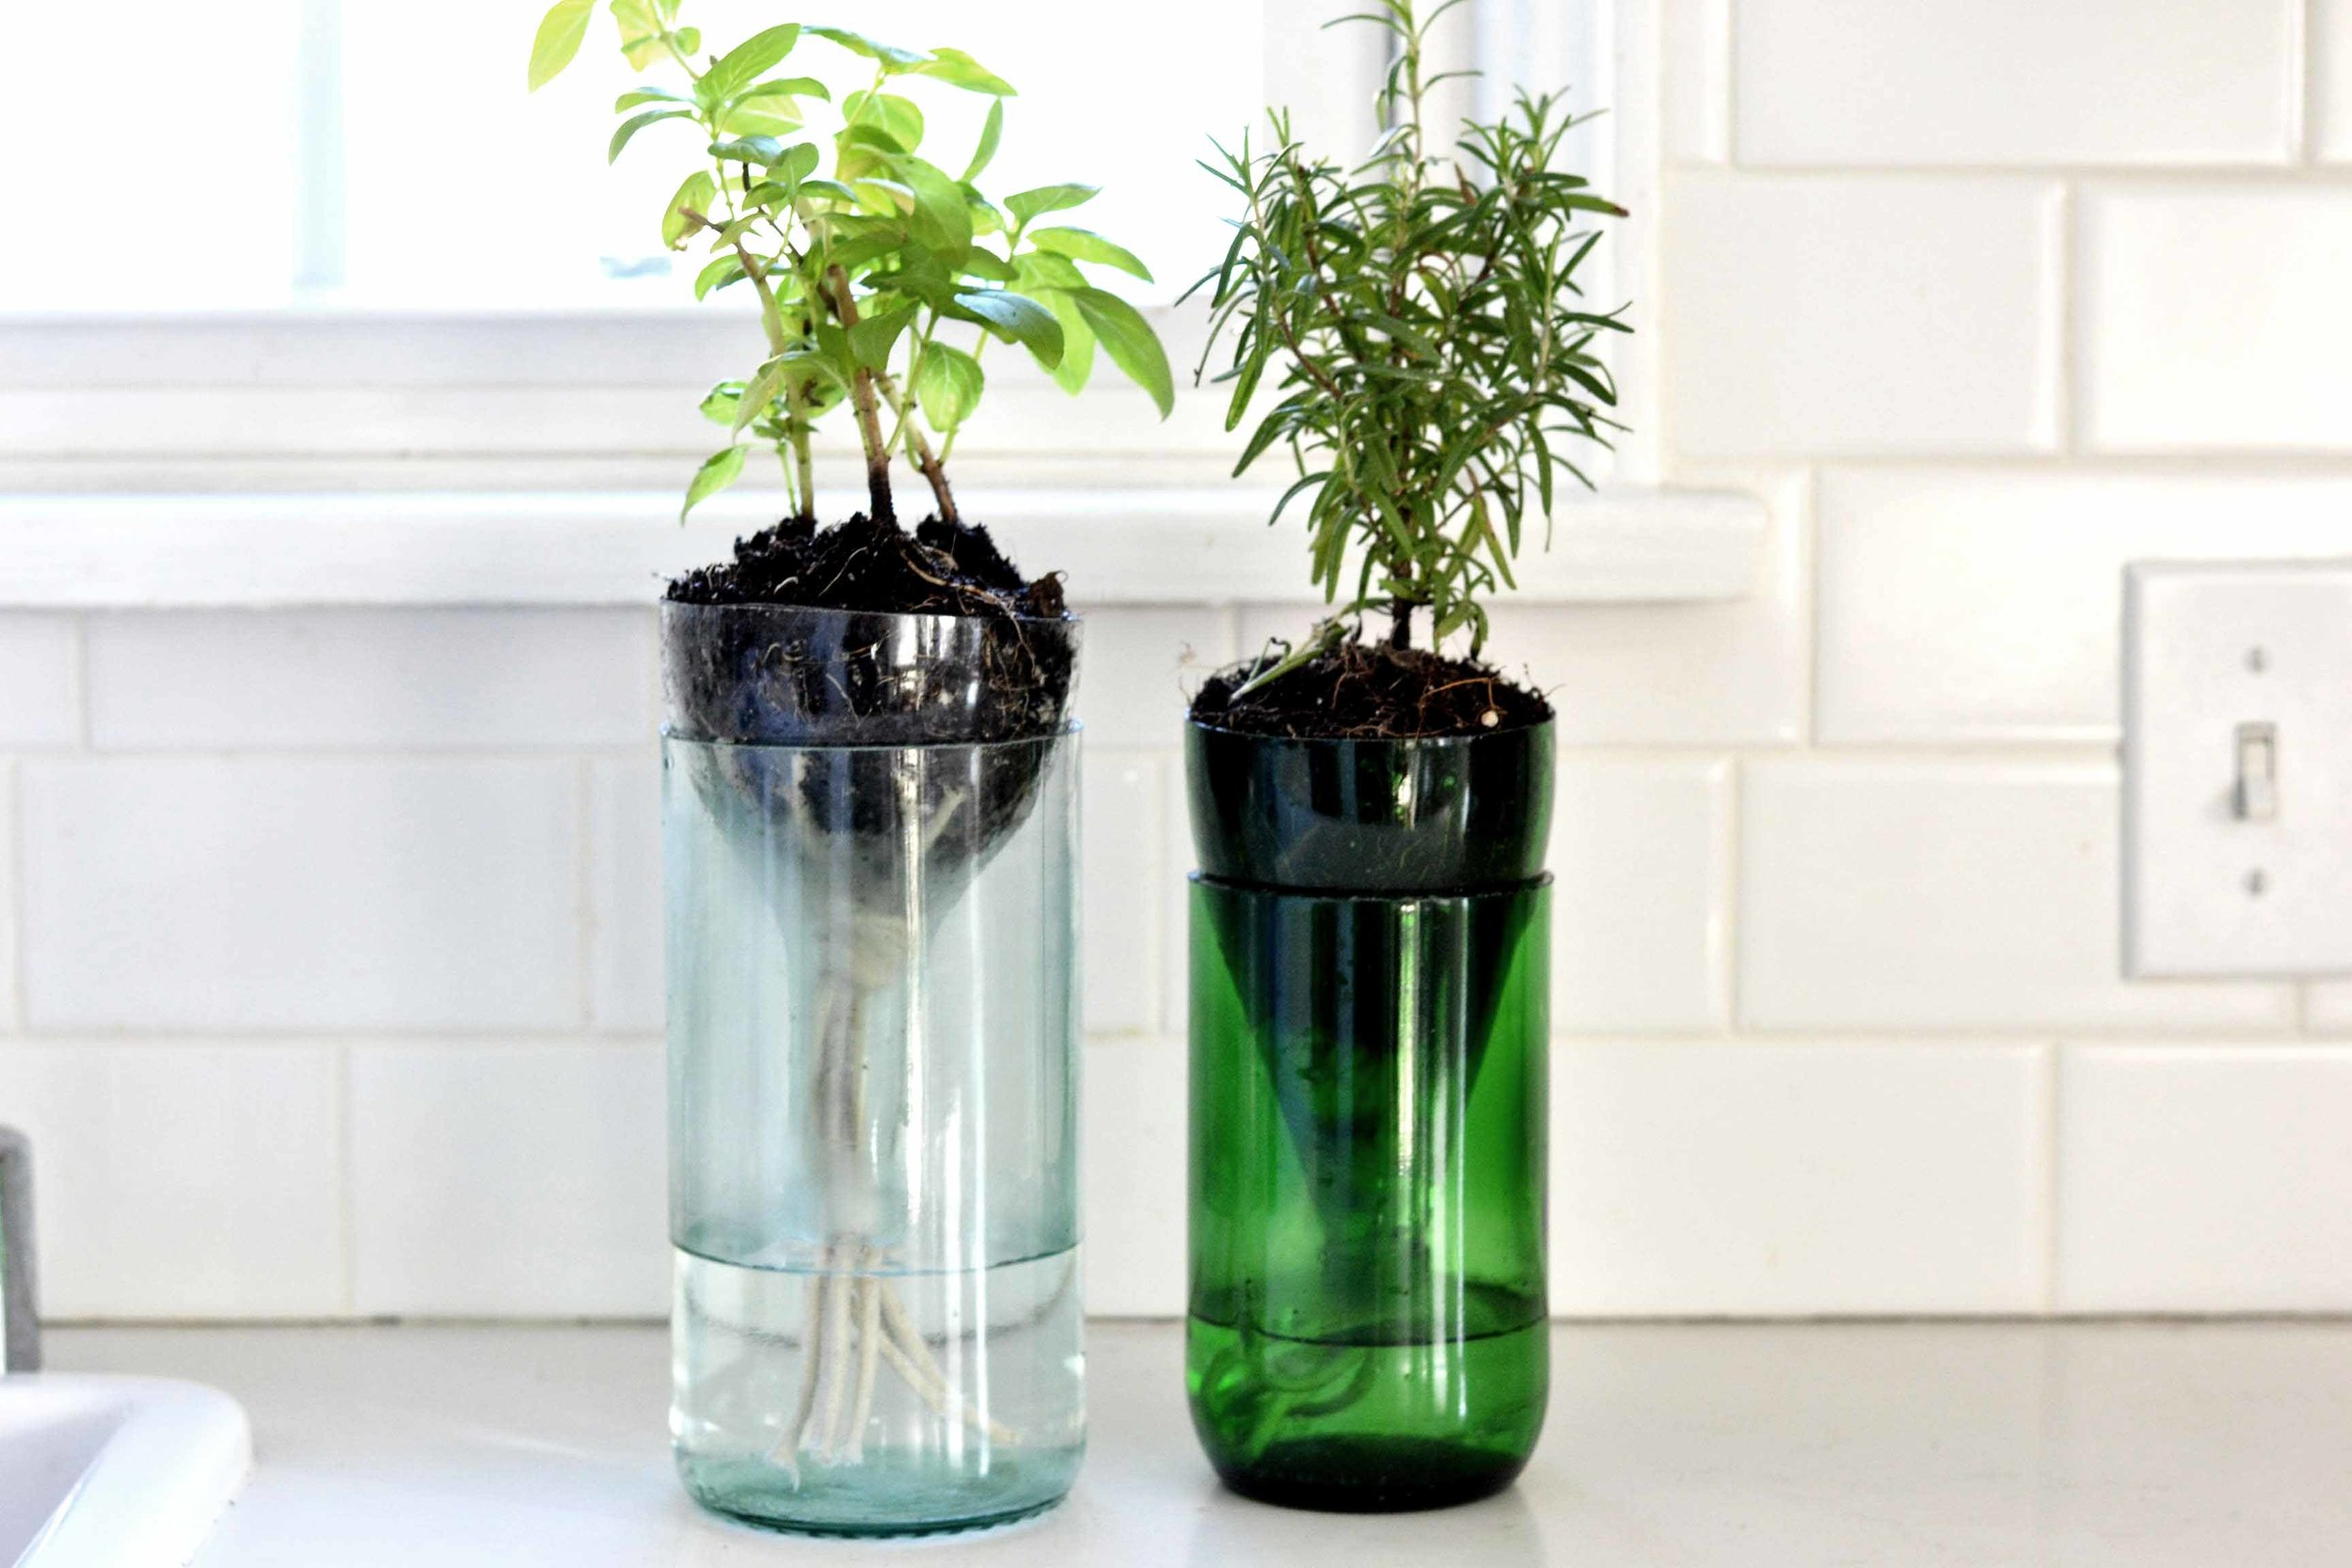 DIY #3 - Self-watering Herb GardenThis last diy is probably my fave. It's a self-watering herb garden. It includes both parts of the bottle for zero waste. You could even use a plastic bottle for this one.